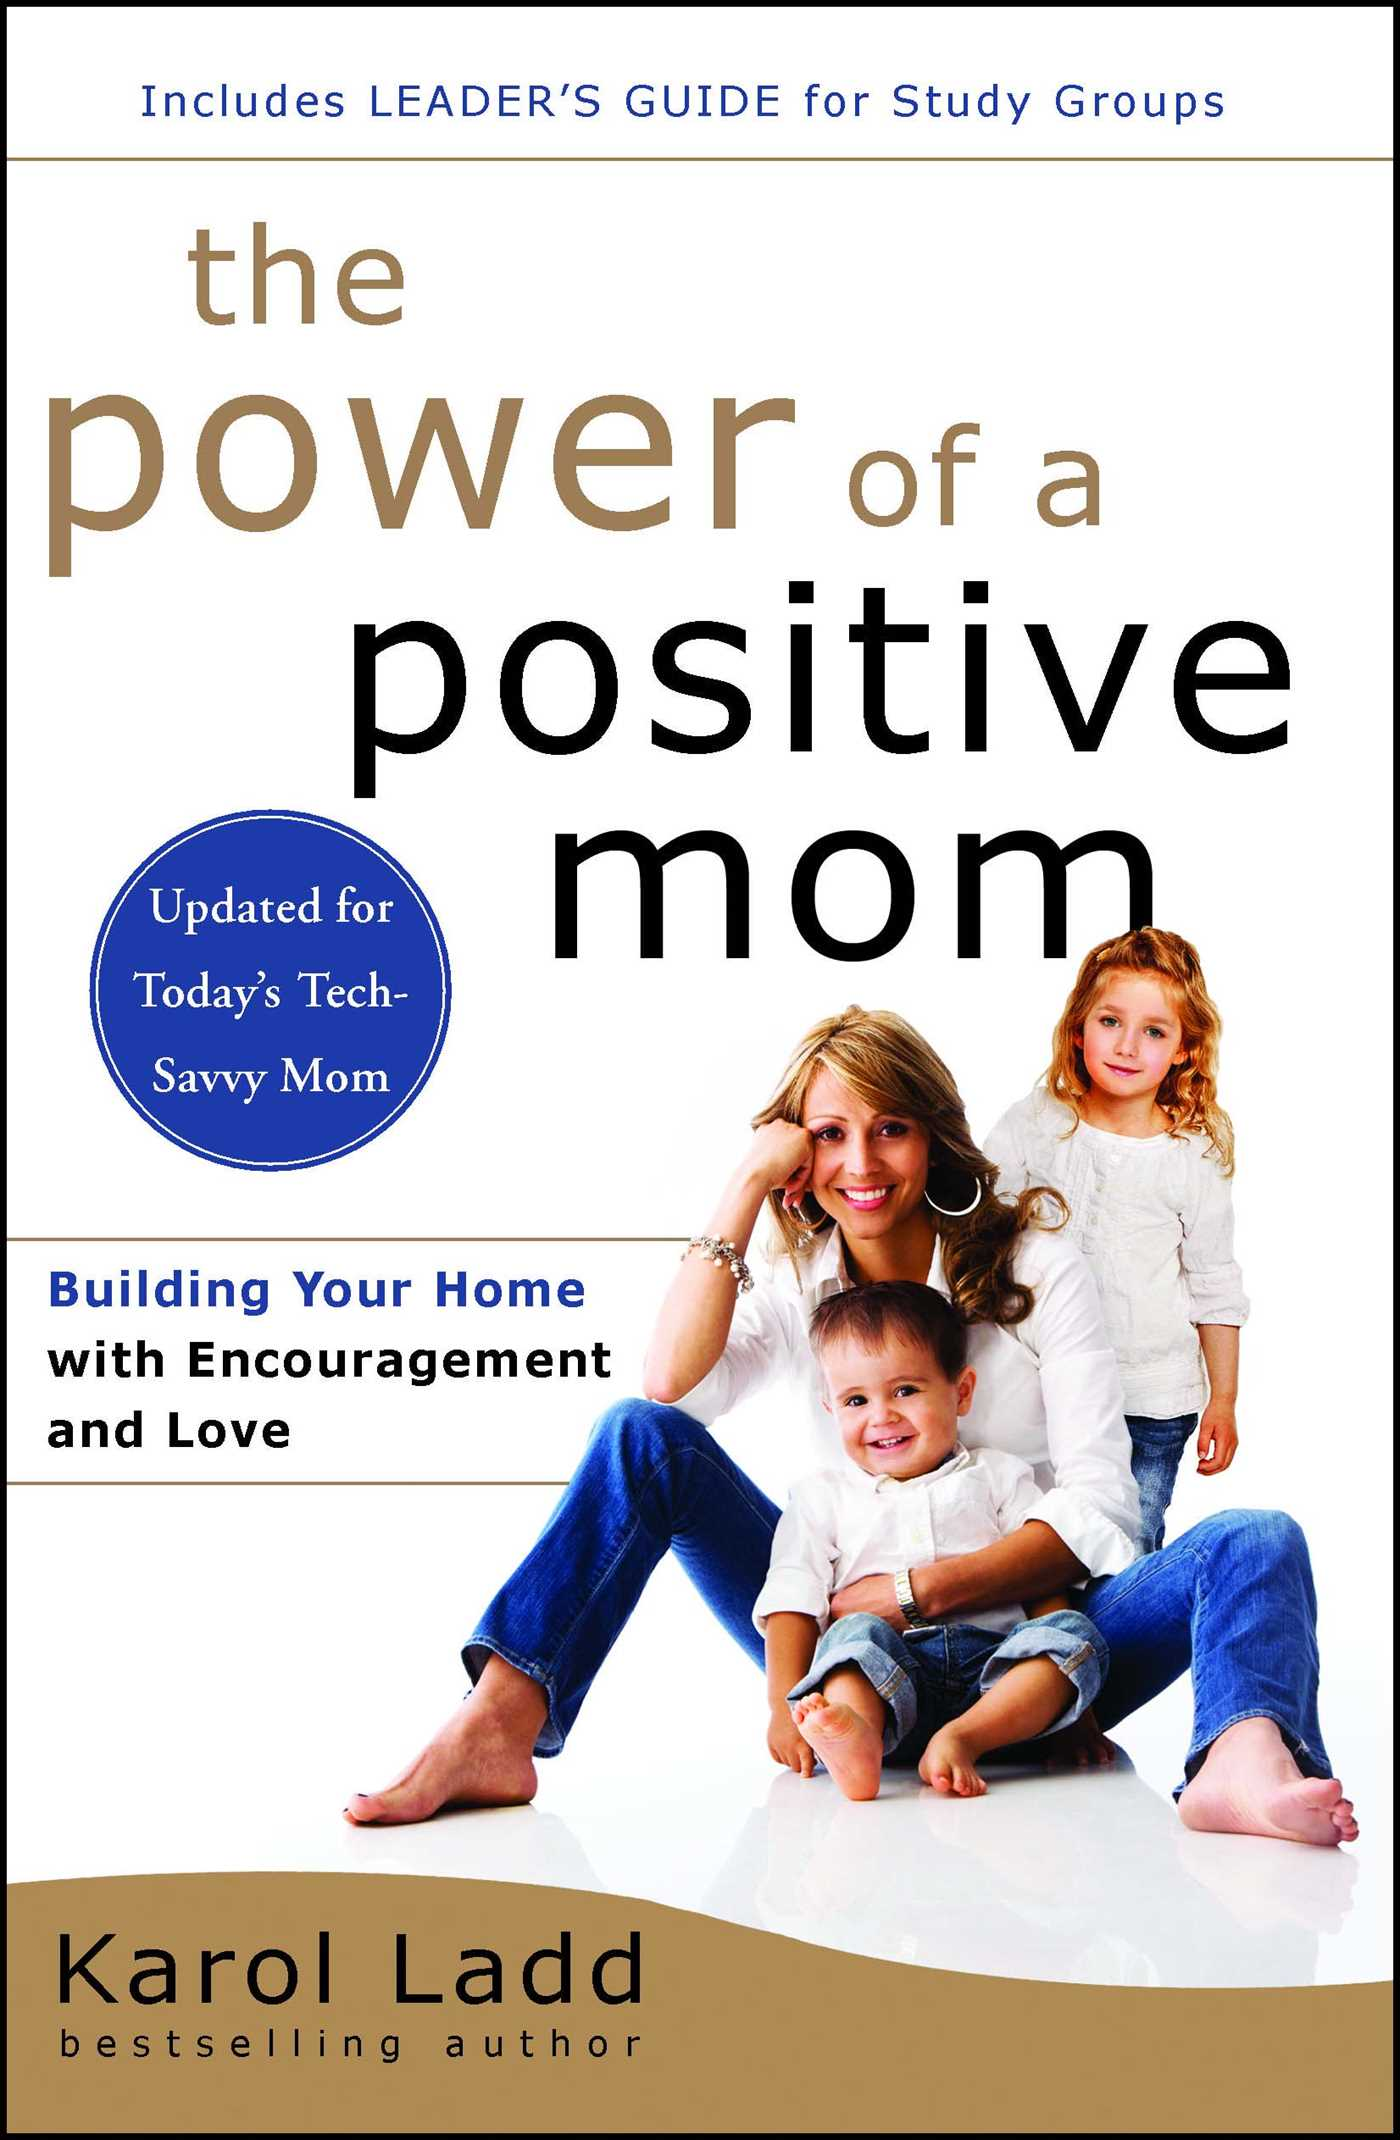 Power of a positive mom 9781439122716 hr